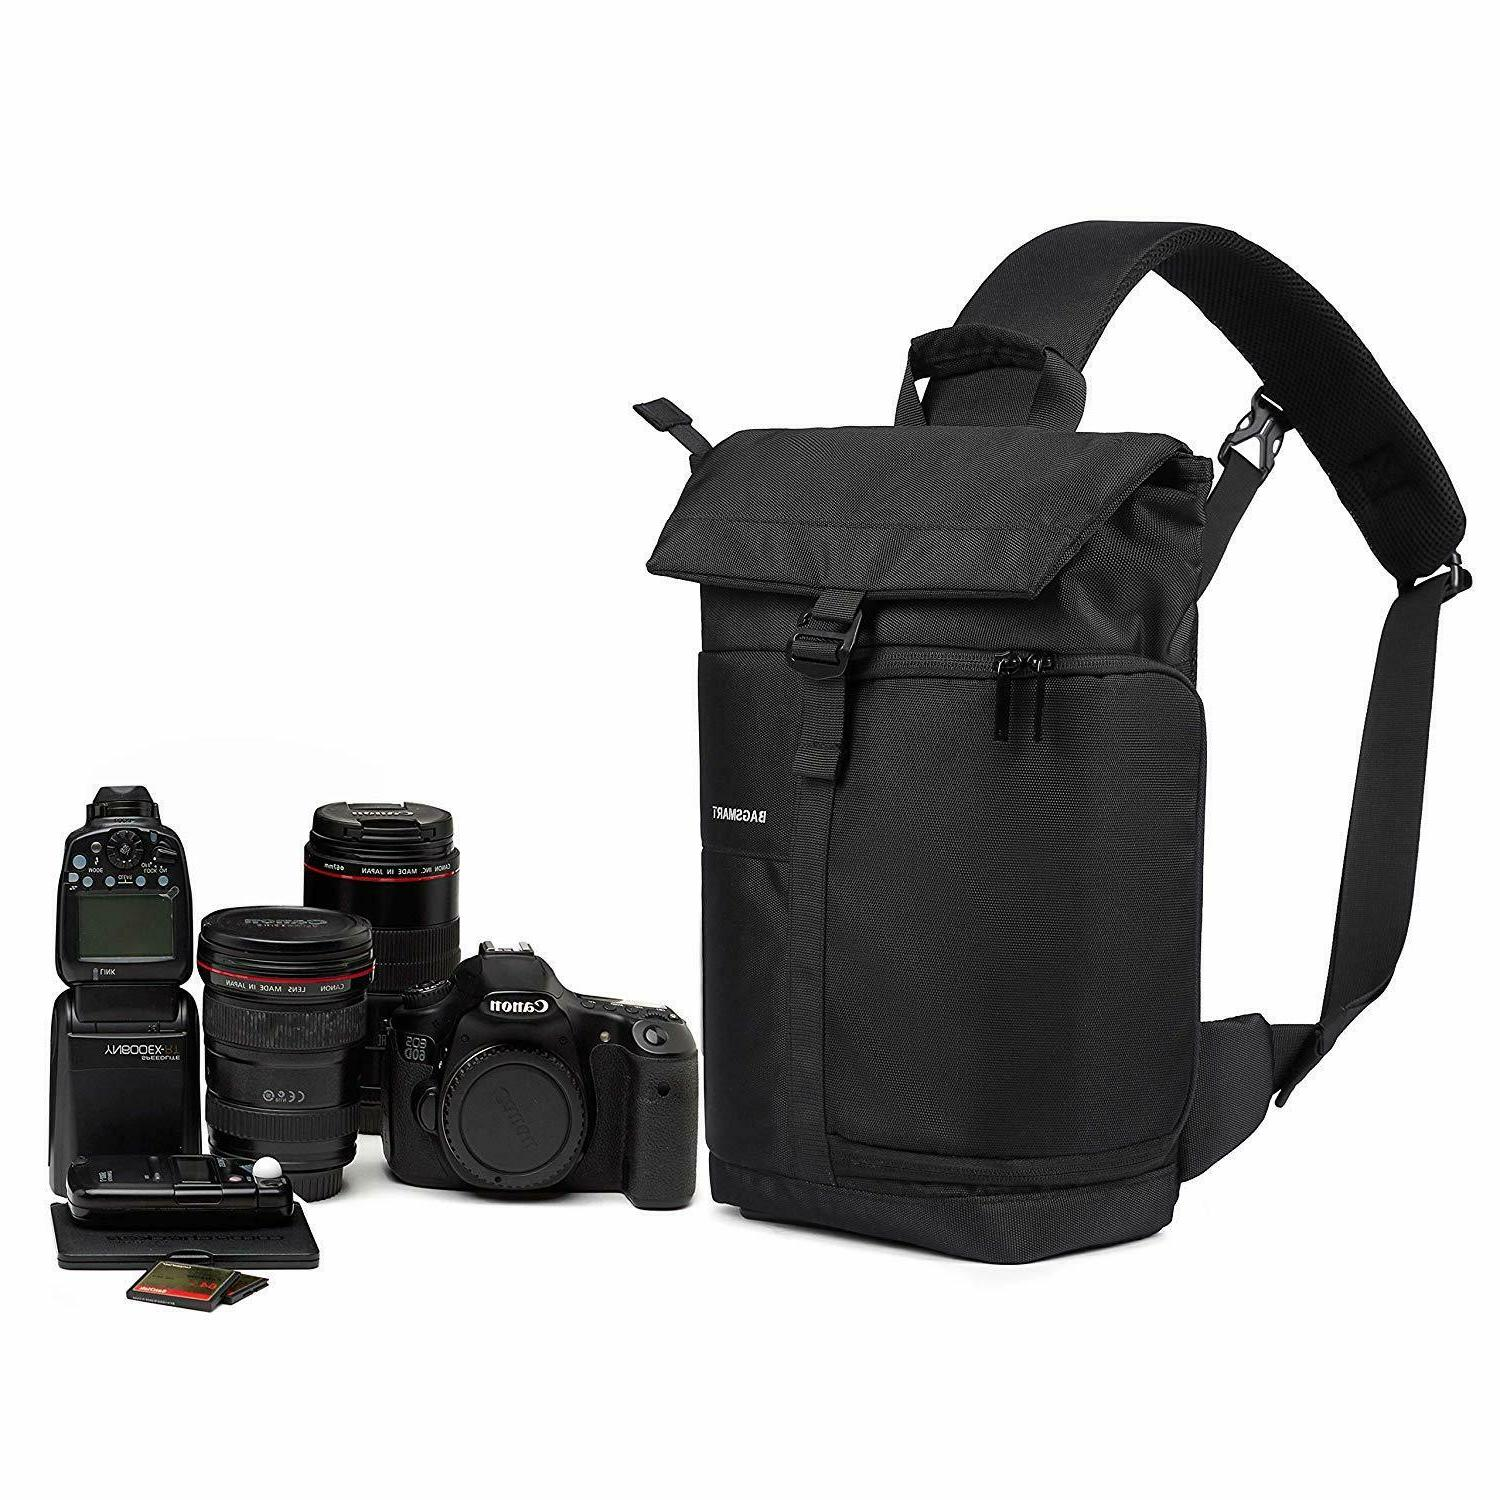 BAGSMART Camera Bag,DSLR Camera Bag Sling Bag 1 Camera,1 Lens,1DJI Pro